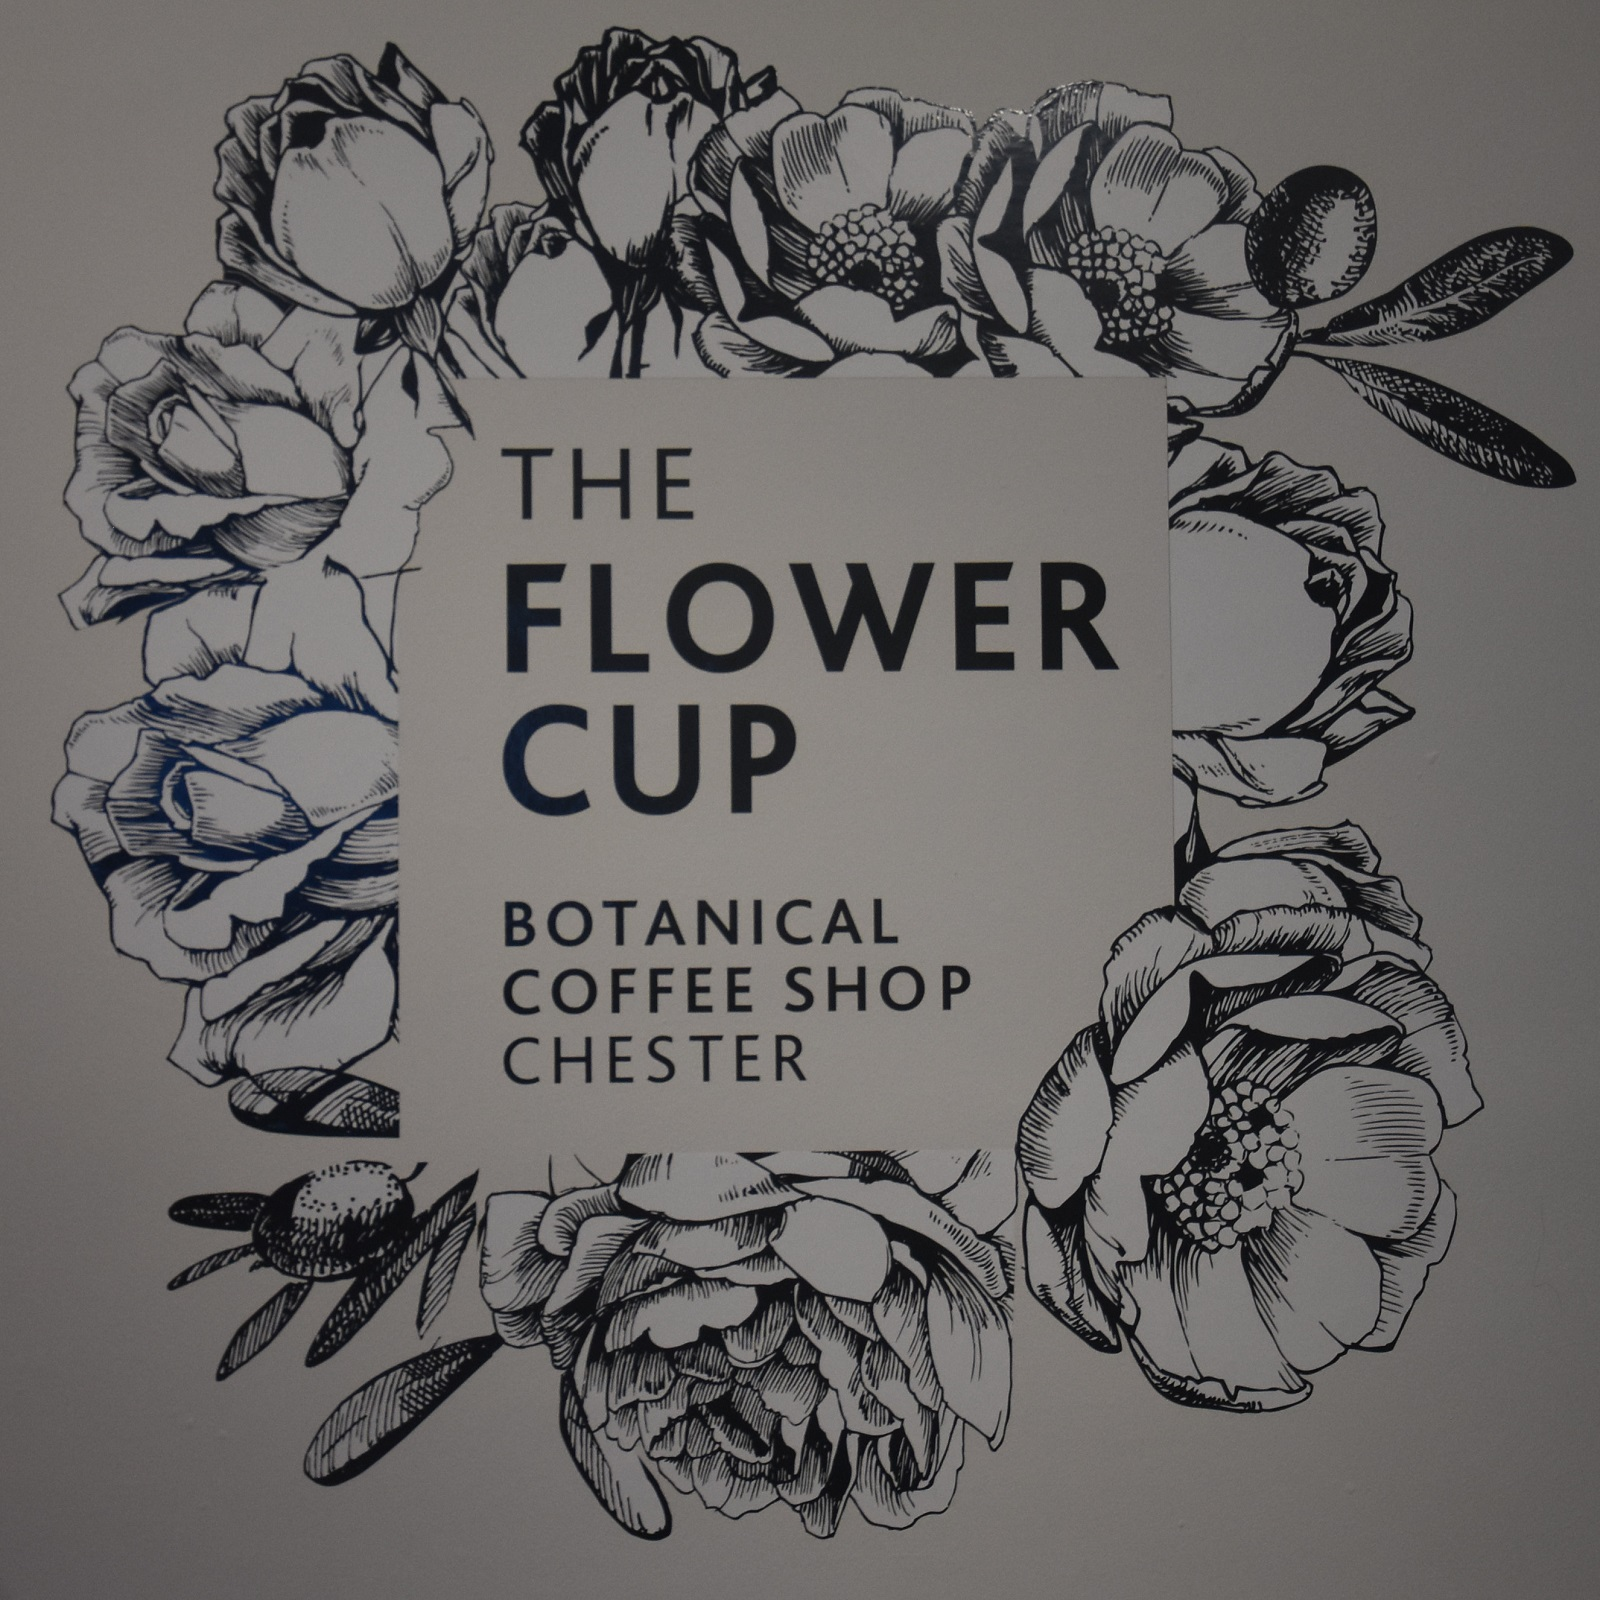 Detail from a drawing of a wreath of the wall of The Flower Cup, a Botanical Coffee Shop in Chester.